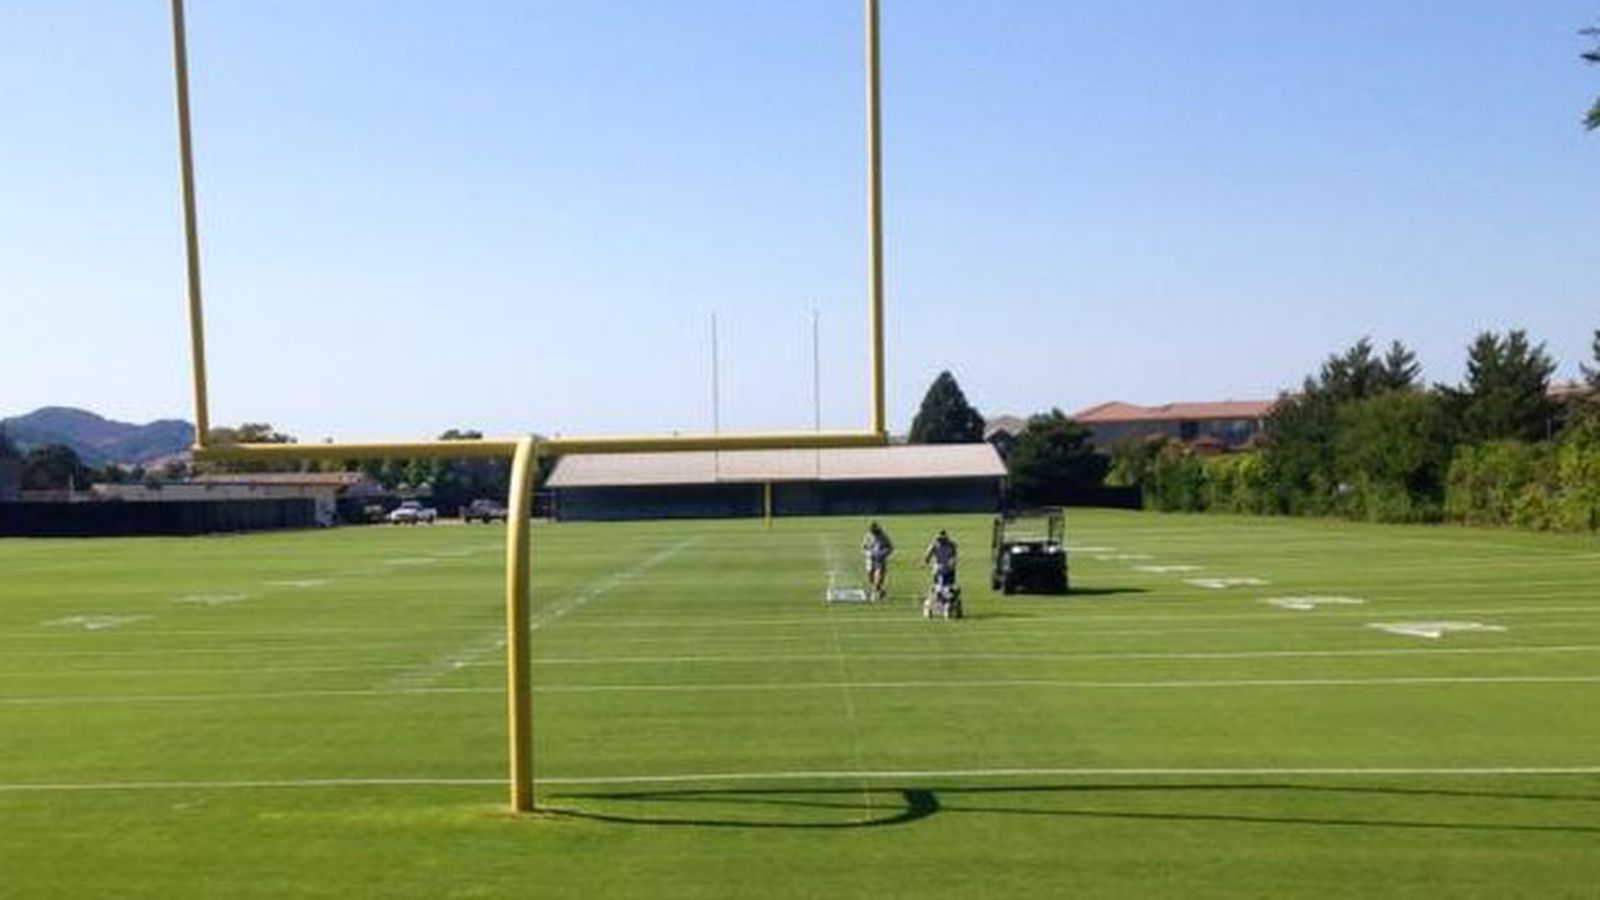 Training_camp_2014_field_during_4__2_.0